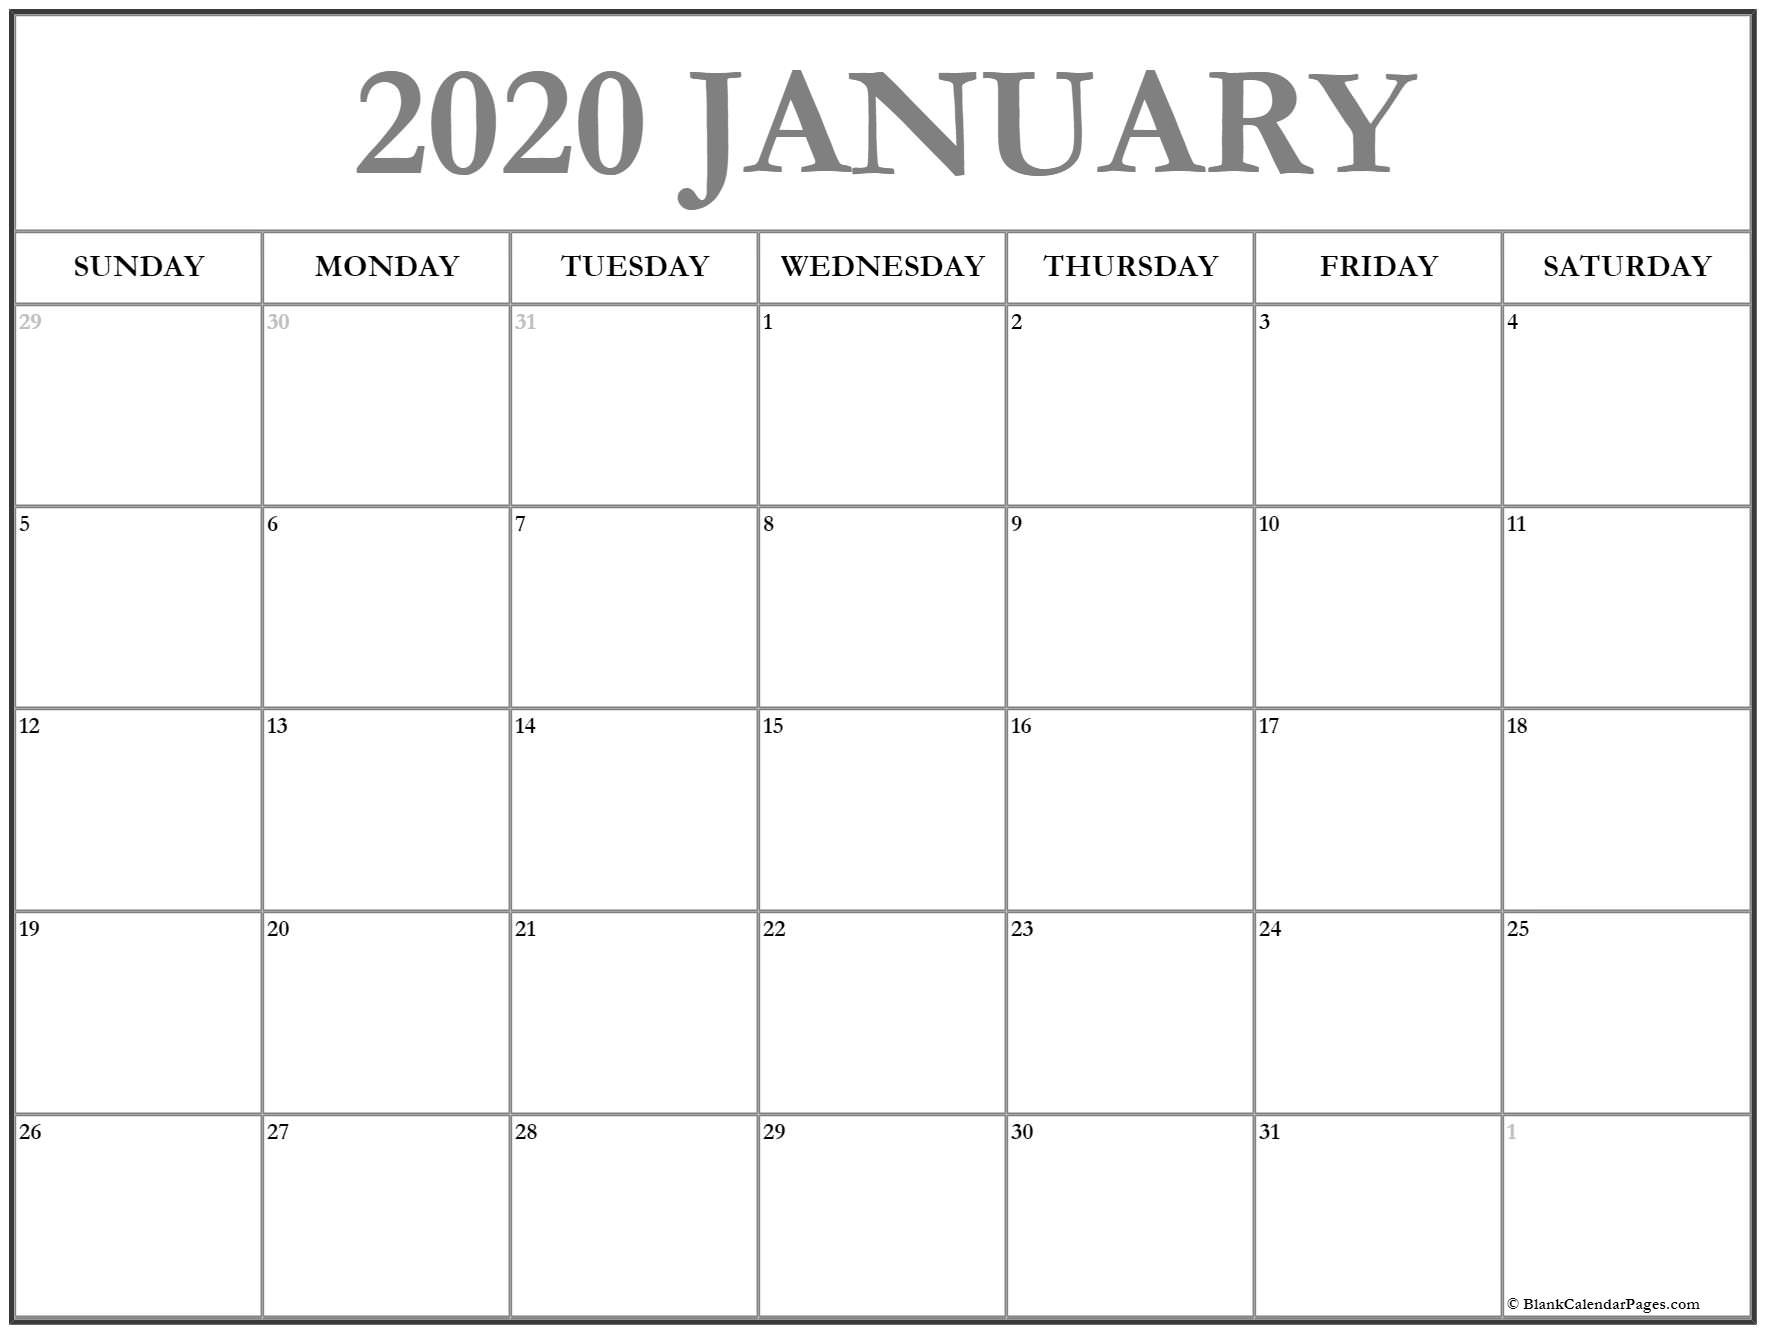 January 2020 Calendar | Free Printable Monthly Calendars-January 2020 Calendar Free